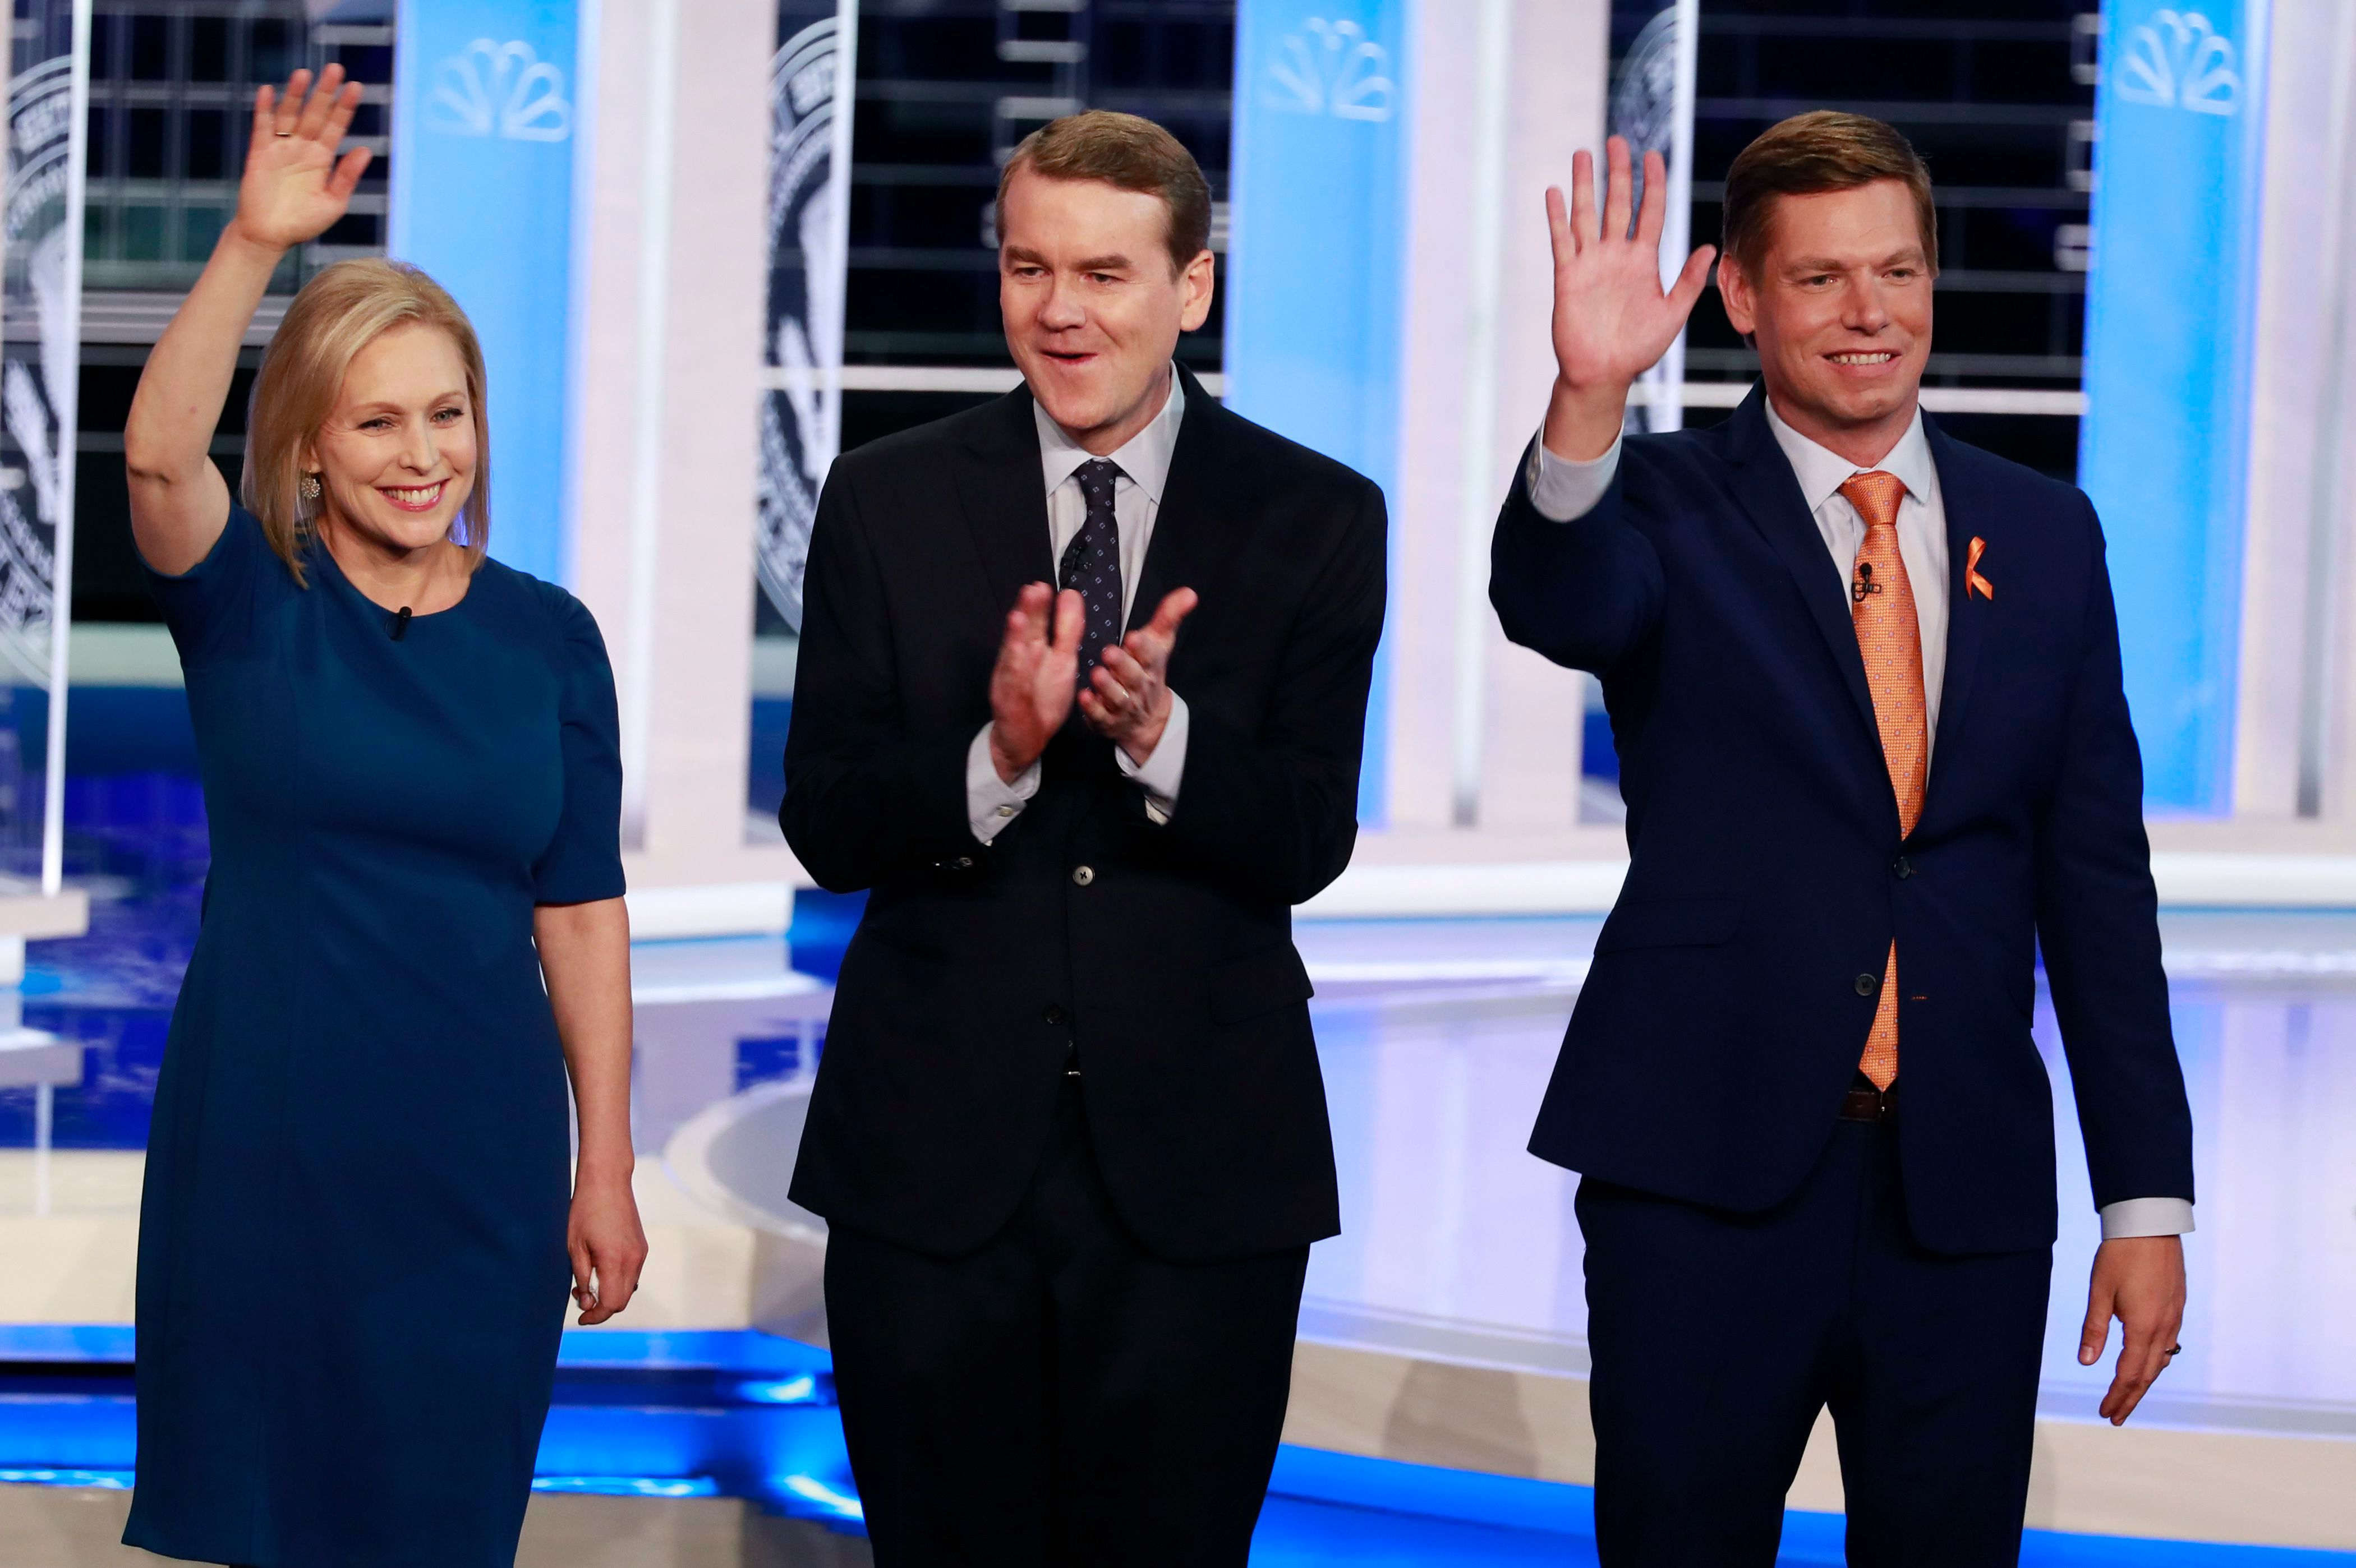 Democratic presidential candidates Sen. Kristen Gillibrand, D-N.Y., left, former Colorado Sen. Michael Bennet and Rep. Eric Swalwell, D-Calif., stand on stage before a Democratic primary debate hosted by NBC News at the Adrienne Arsht Center for the Performing Arts, in MiamiDem 2020 Debate, Miami, USA - 27 Jun 2019